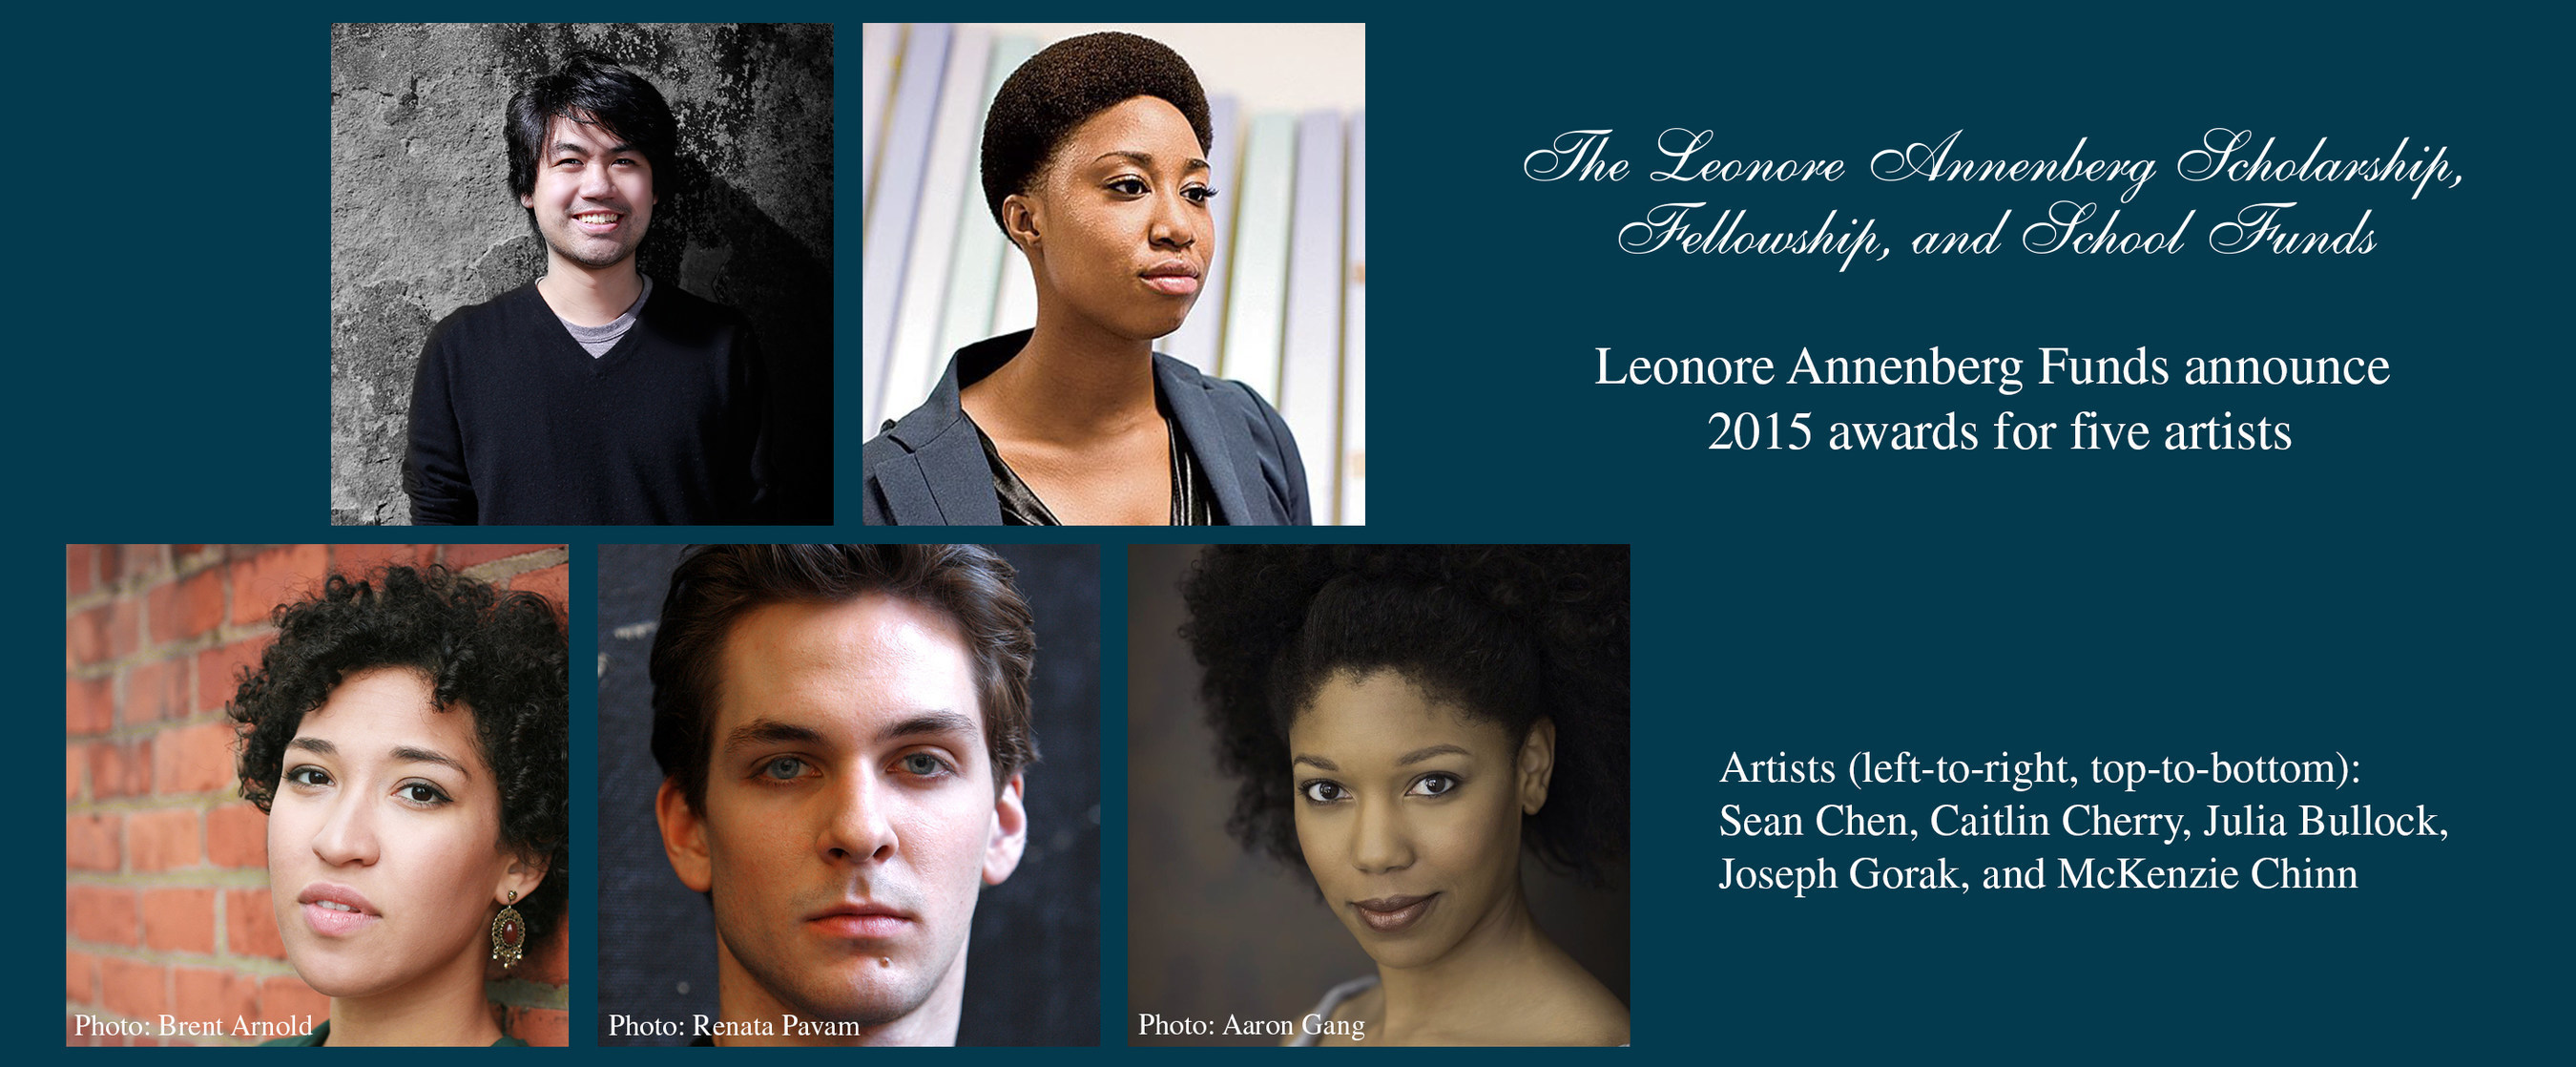 Leonore Annenberg Fellowship Fund for the Visual and Performing Arts announces its 2015 fellows: (left-to-right, top-row-then-bottom): Sean Chen, Caitlin Cherry, Julia Bullock, Joseph Gorak, and McKenzie Chinn.